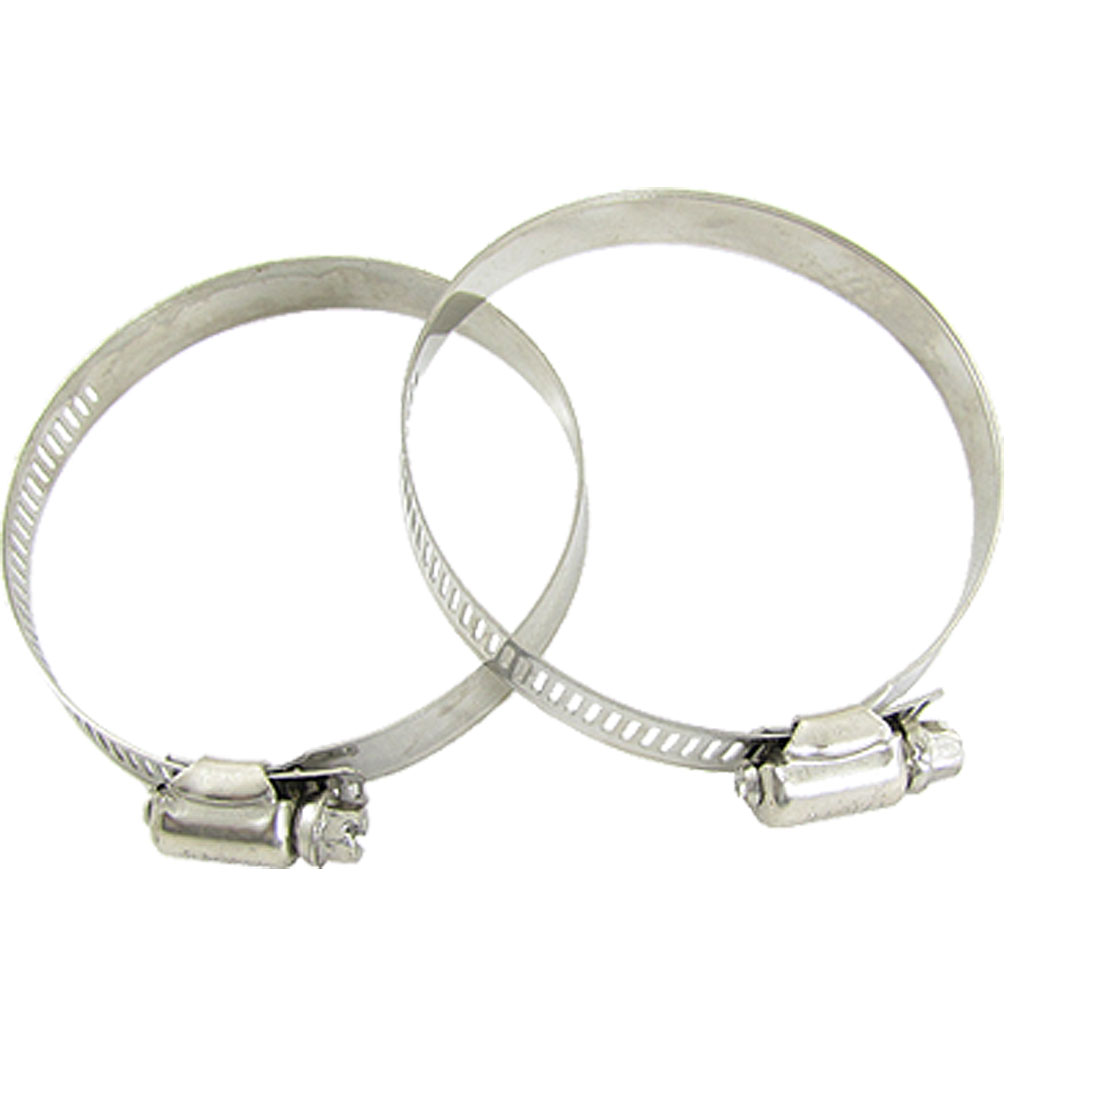 2 Pcs Assortment Alloy Silver Tone 60-83mm Hose Clamps